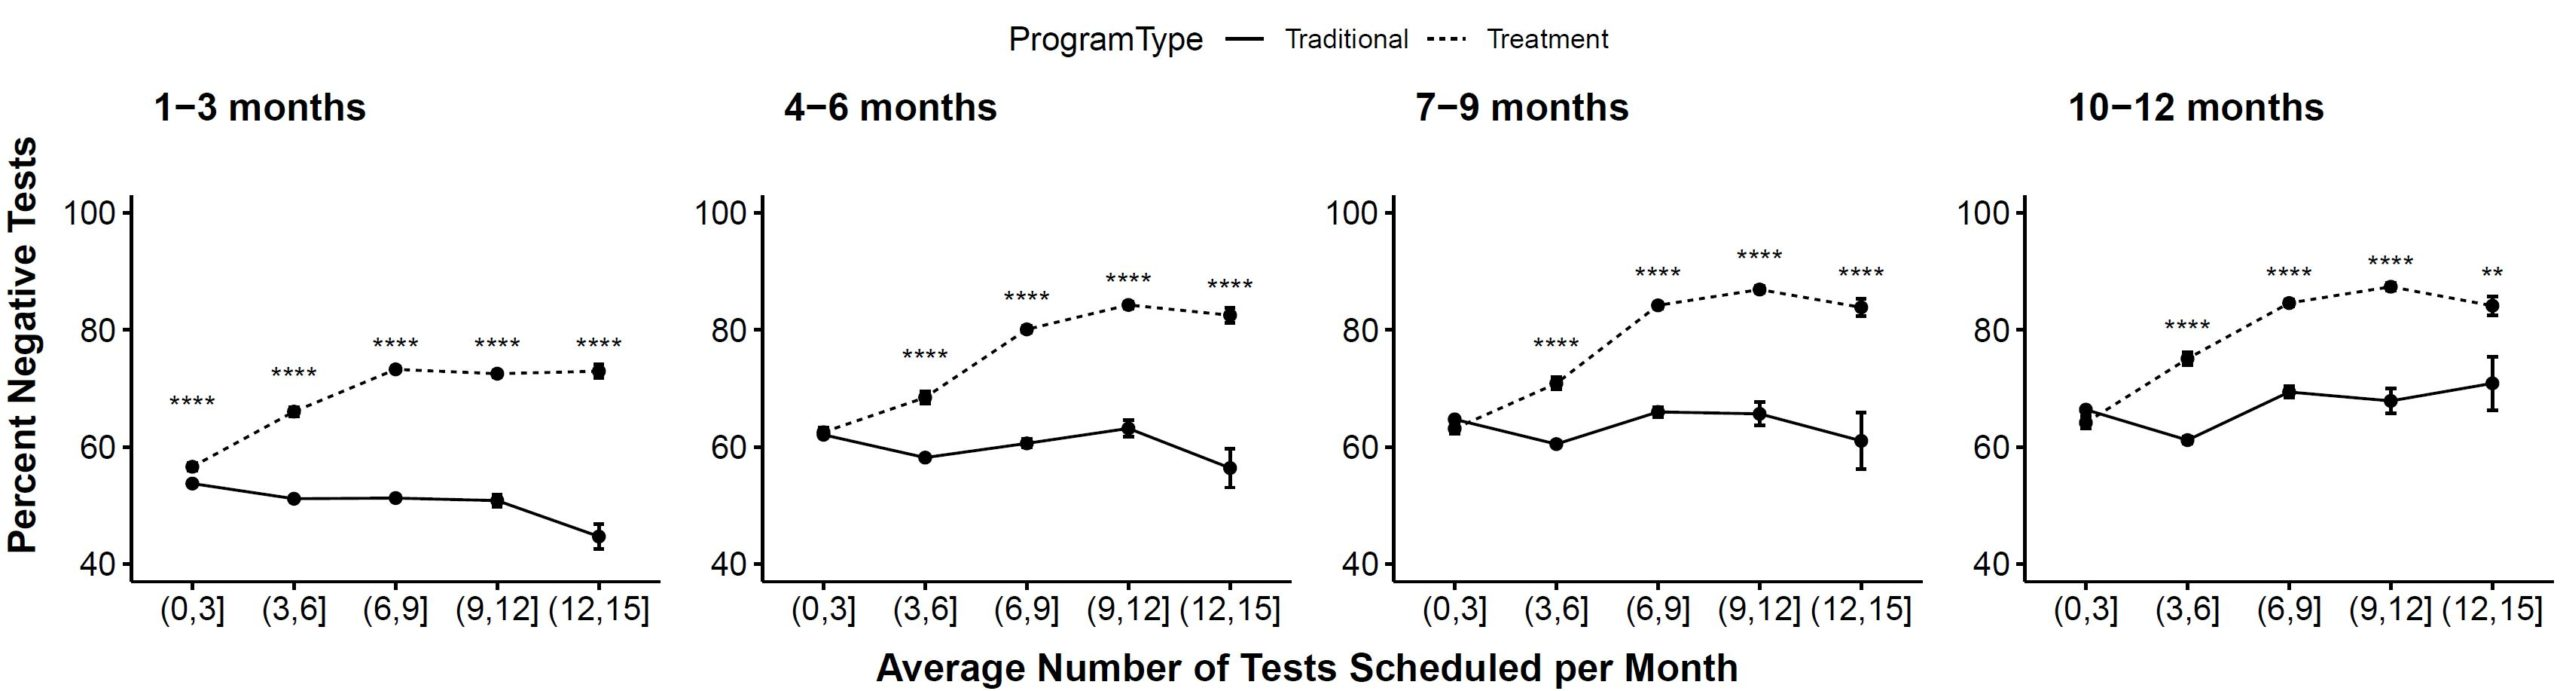 Drug and Alcohol Testing in Community Corrections: Some Provocative Findings - Figure 2.